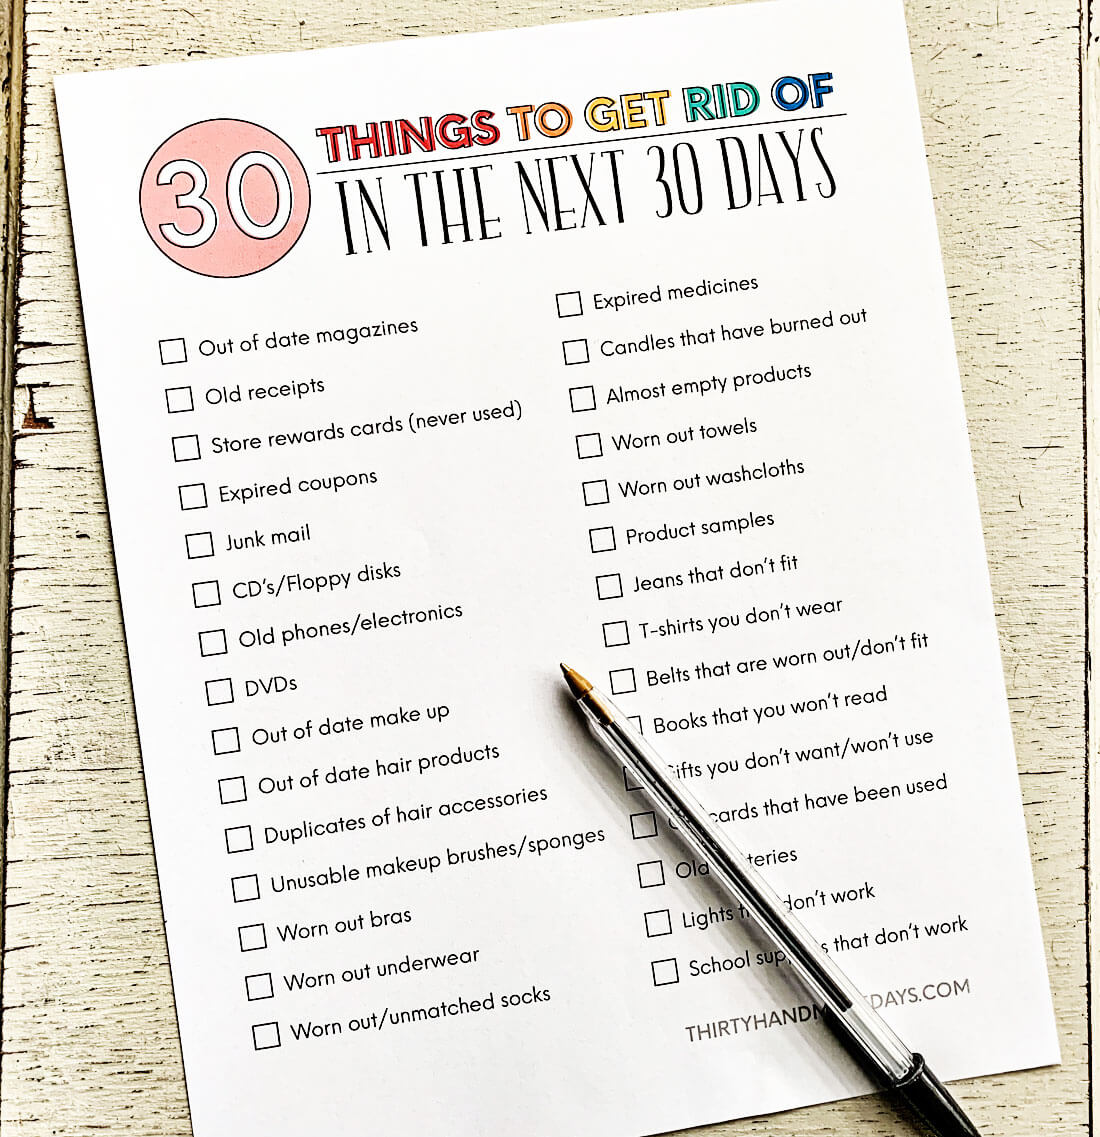 How to declutter your home - printable checklist of things to get rid of in the next 30 days. via www.thirtyhandmadedays.com